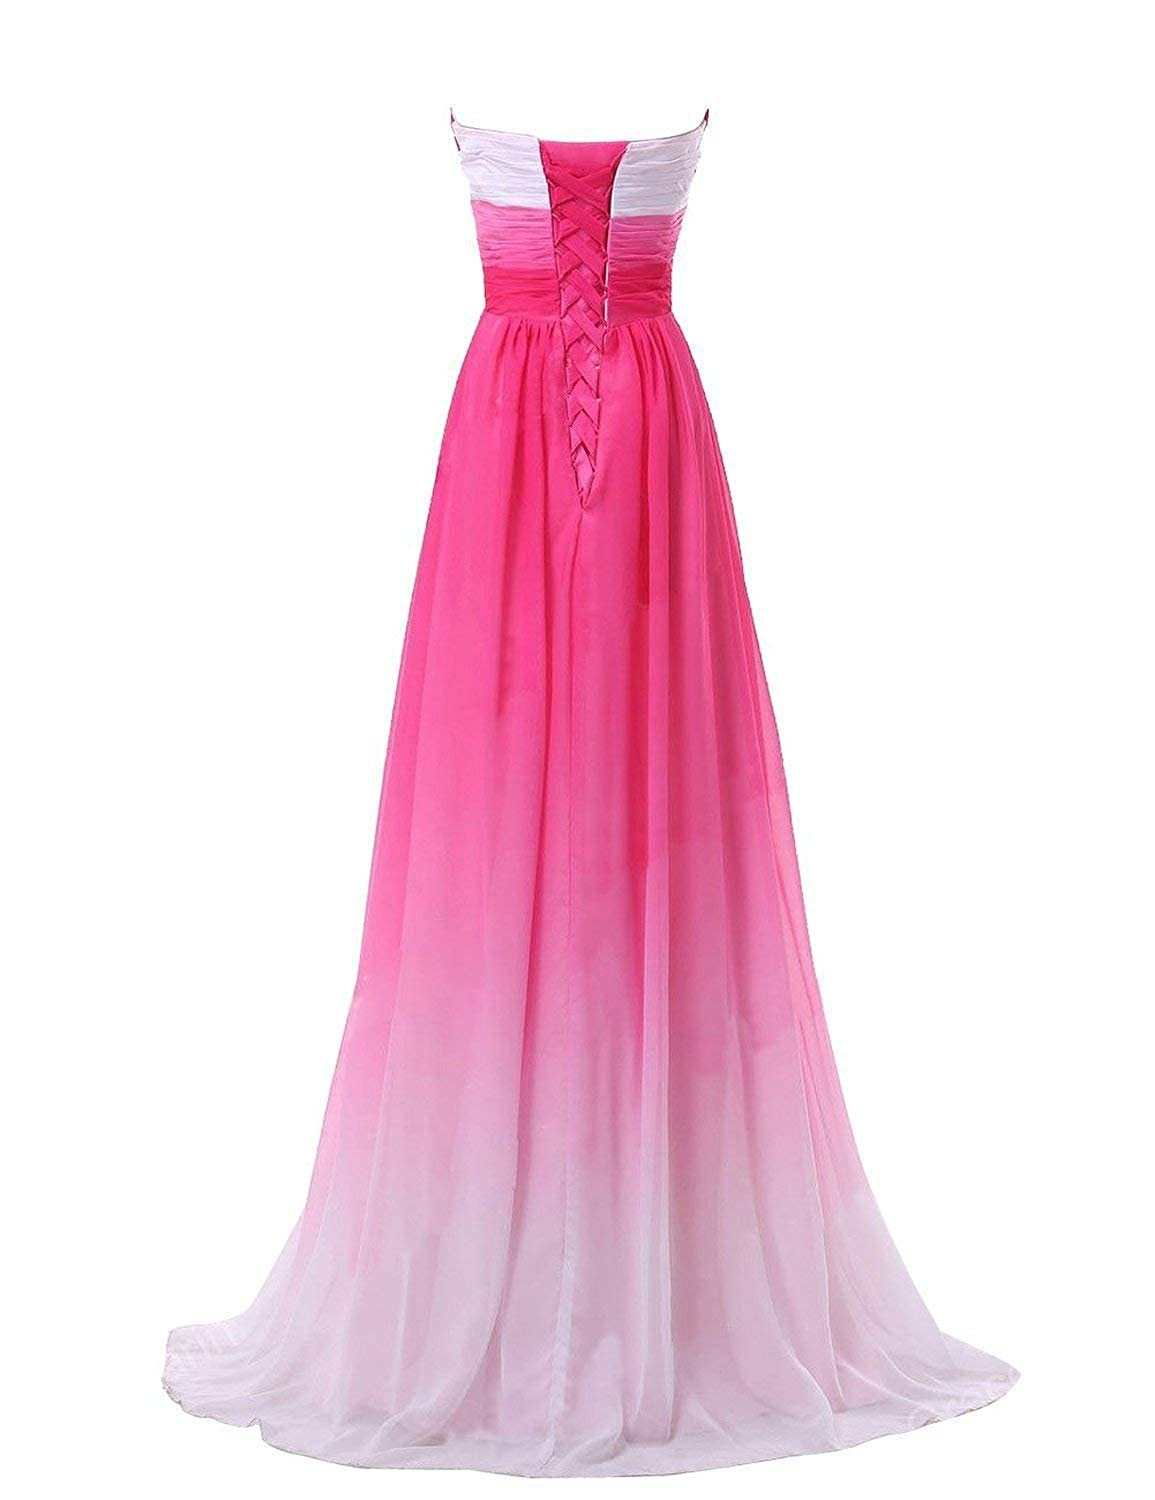 PromQueen Chiffon Strapless Tube Top Shoulder Evening Dresses Toast Clothing Long Chic Gradient Gowns for Bridesmaid Formal